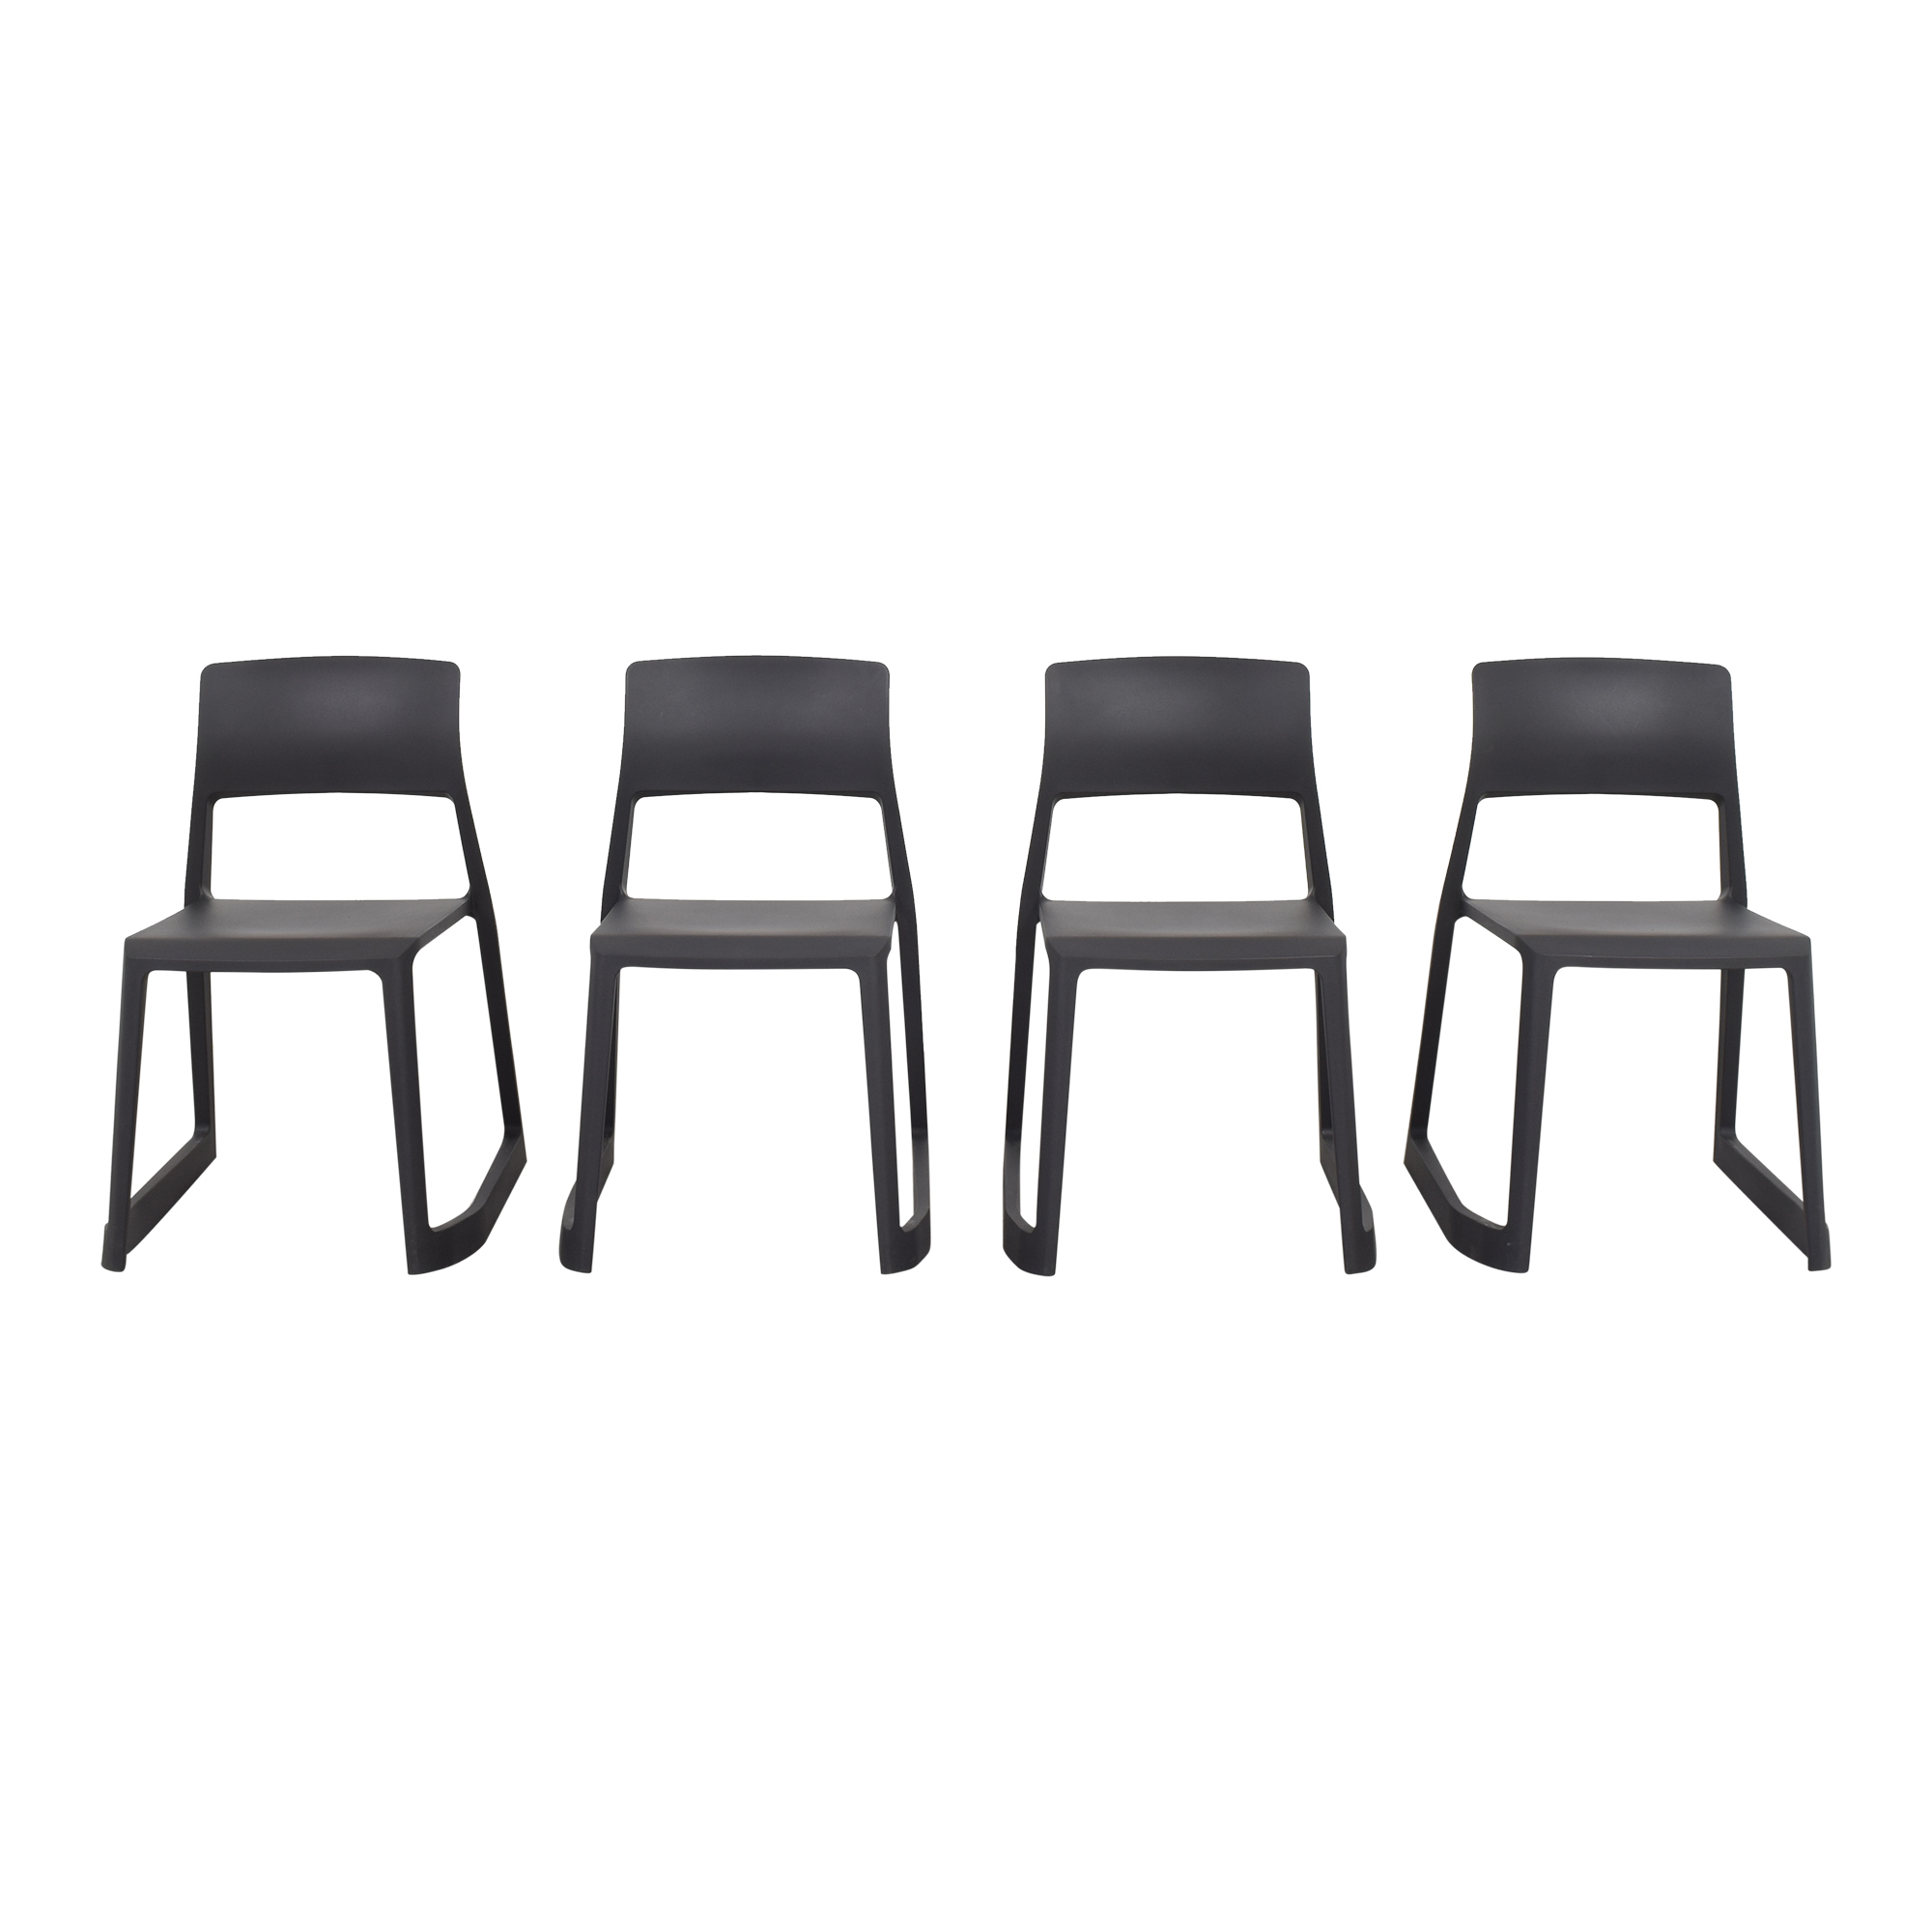 Vitra Vitra Tip Ton Chairs dark grey